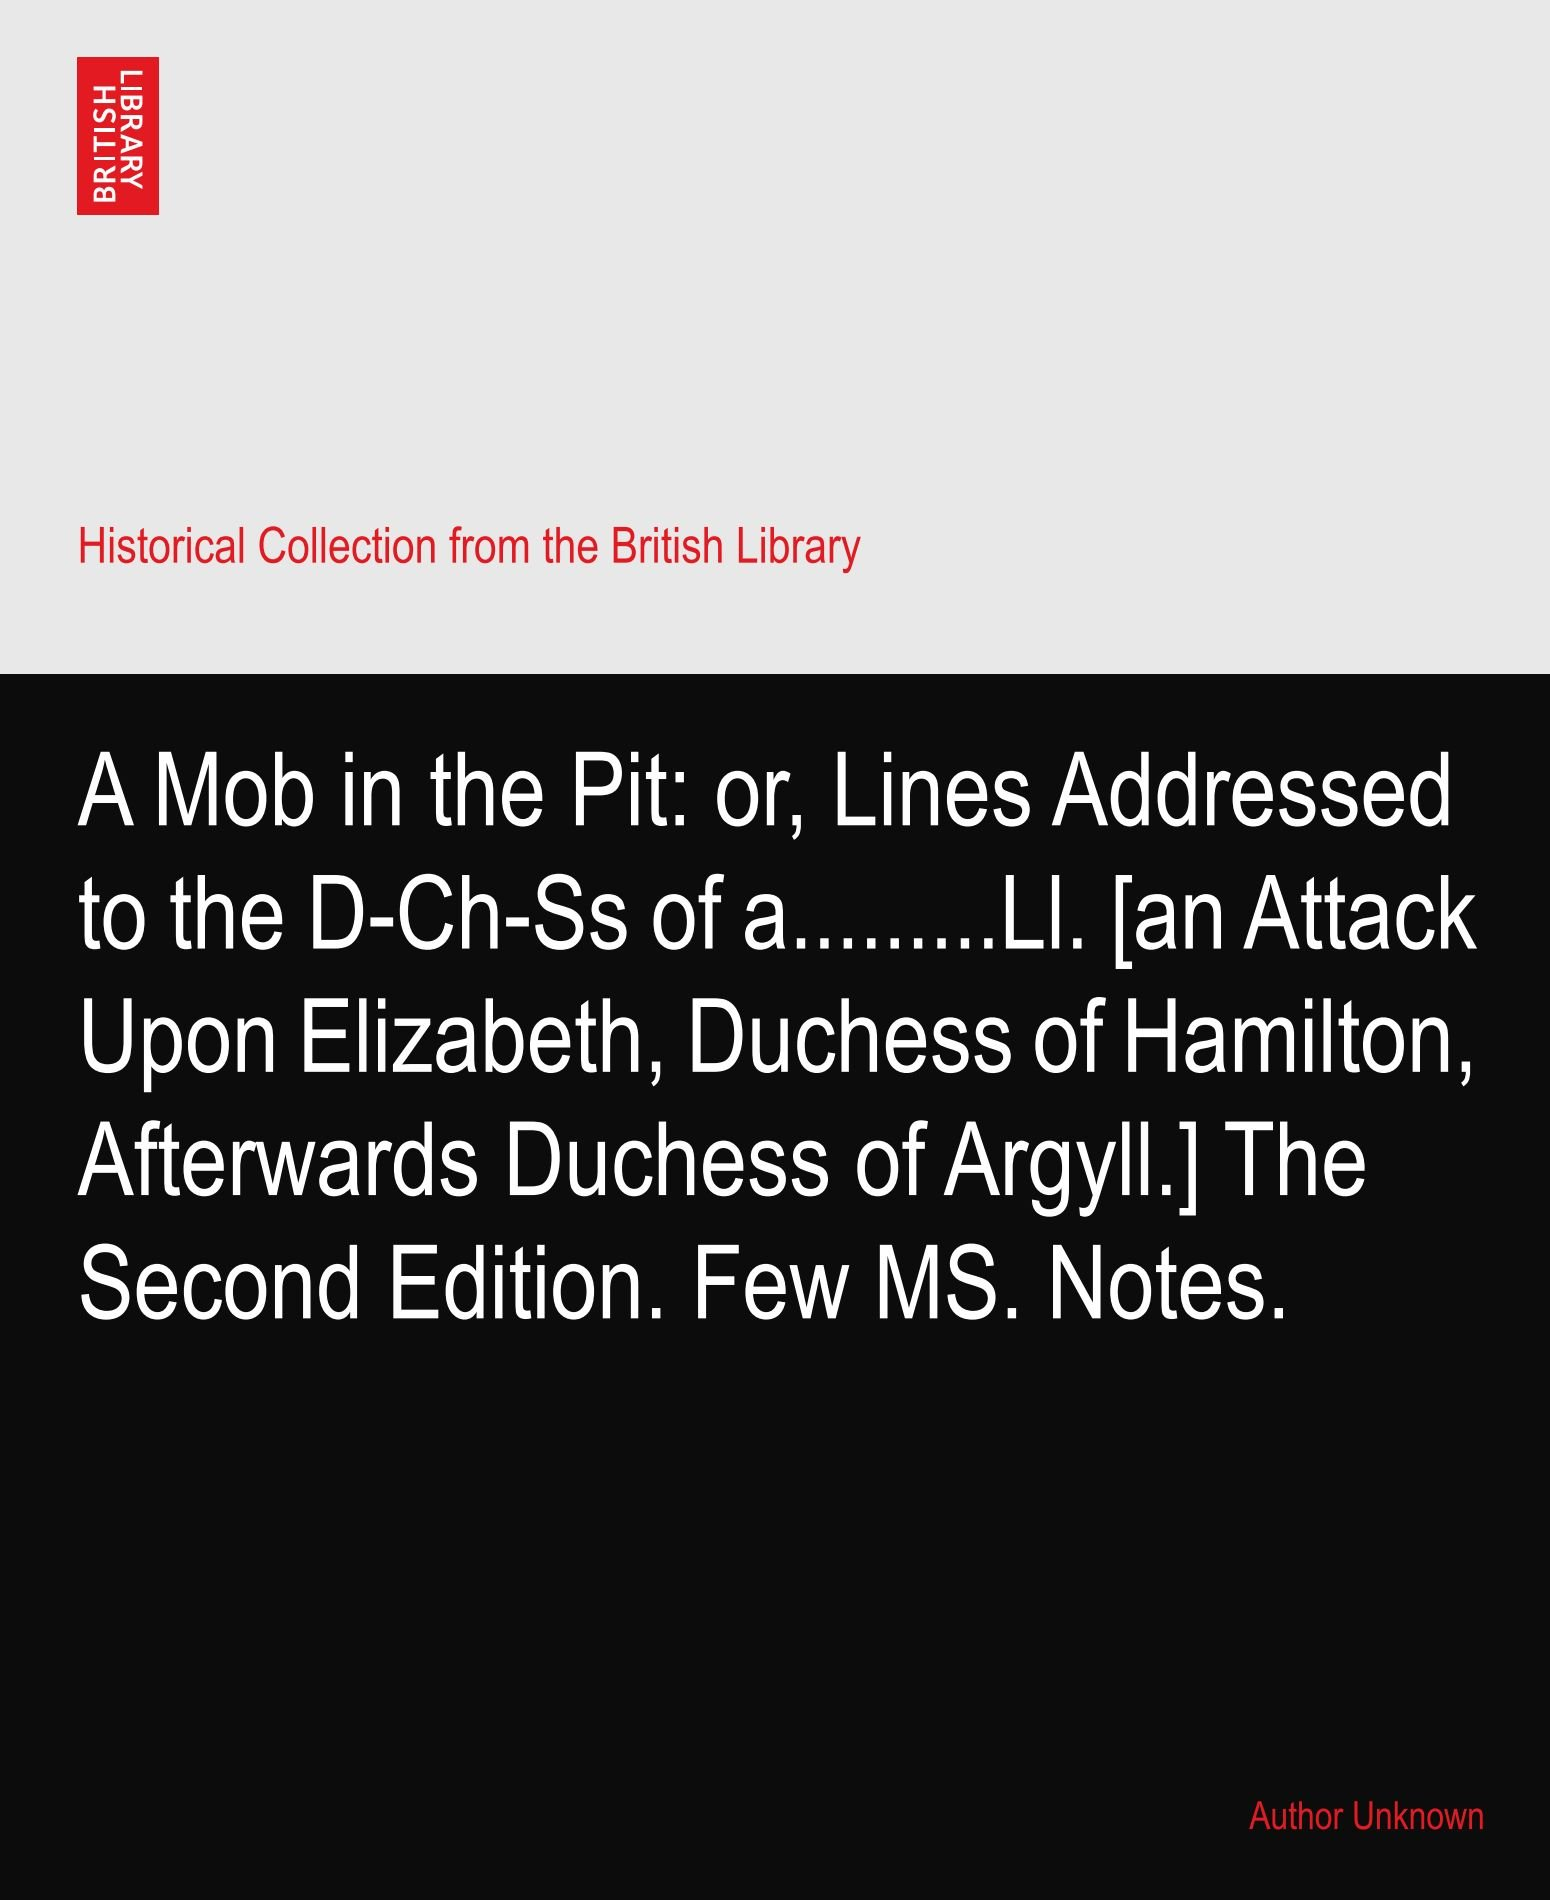 Download A Mob in the Pit: or, Lines Addressed to the D-Ch-Ss of a.........Ll. [an Attack Upon Elizabeth, Duchess of Hamilton, Afterwards Duchess of Argyll.] The Second Edition. Few MS. Notes. pdf epub